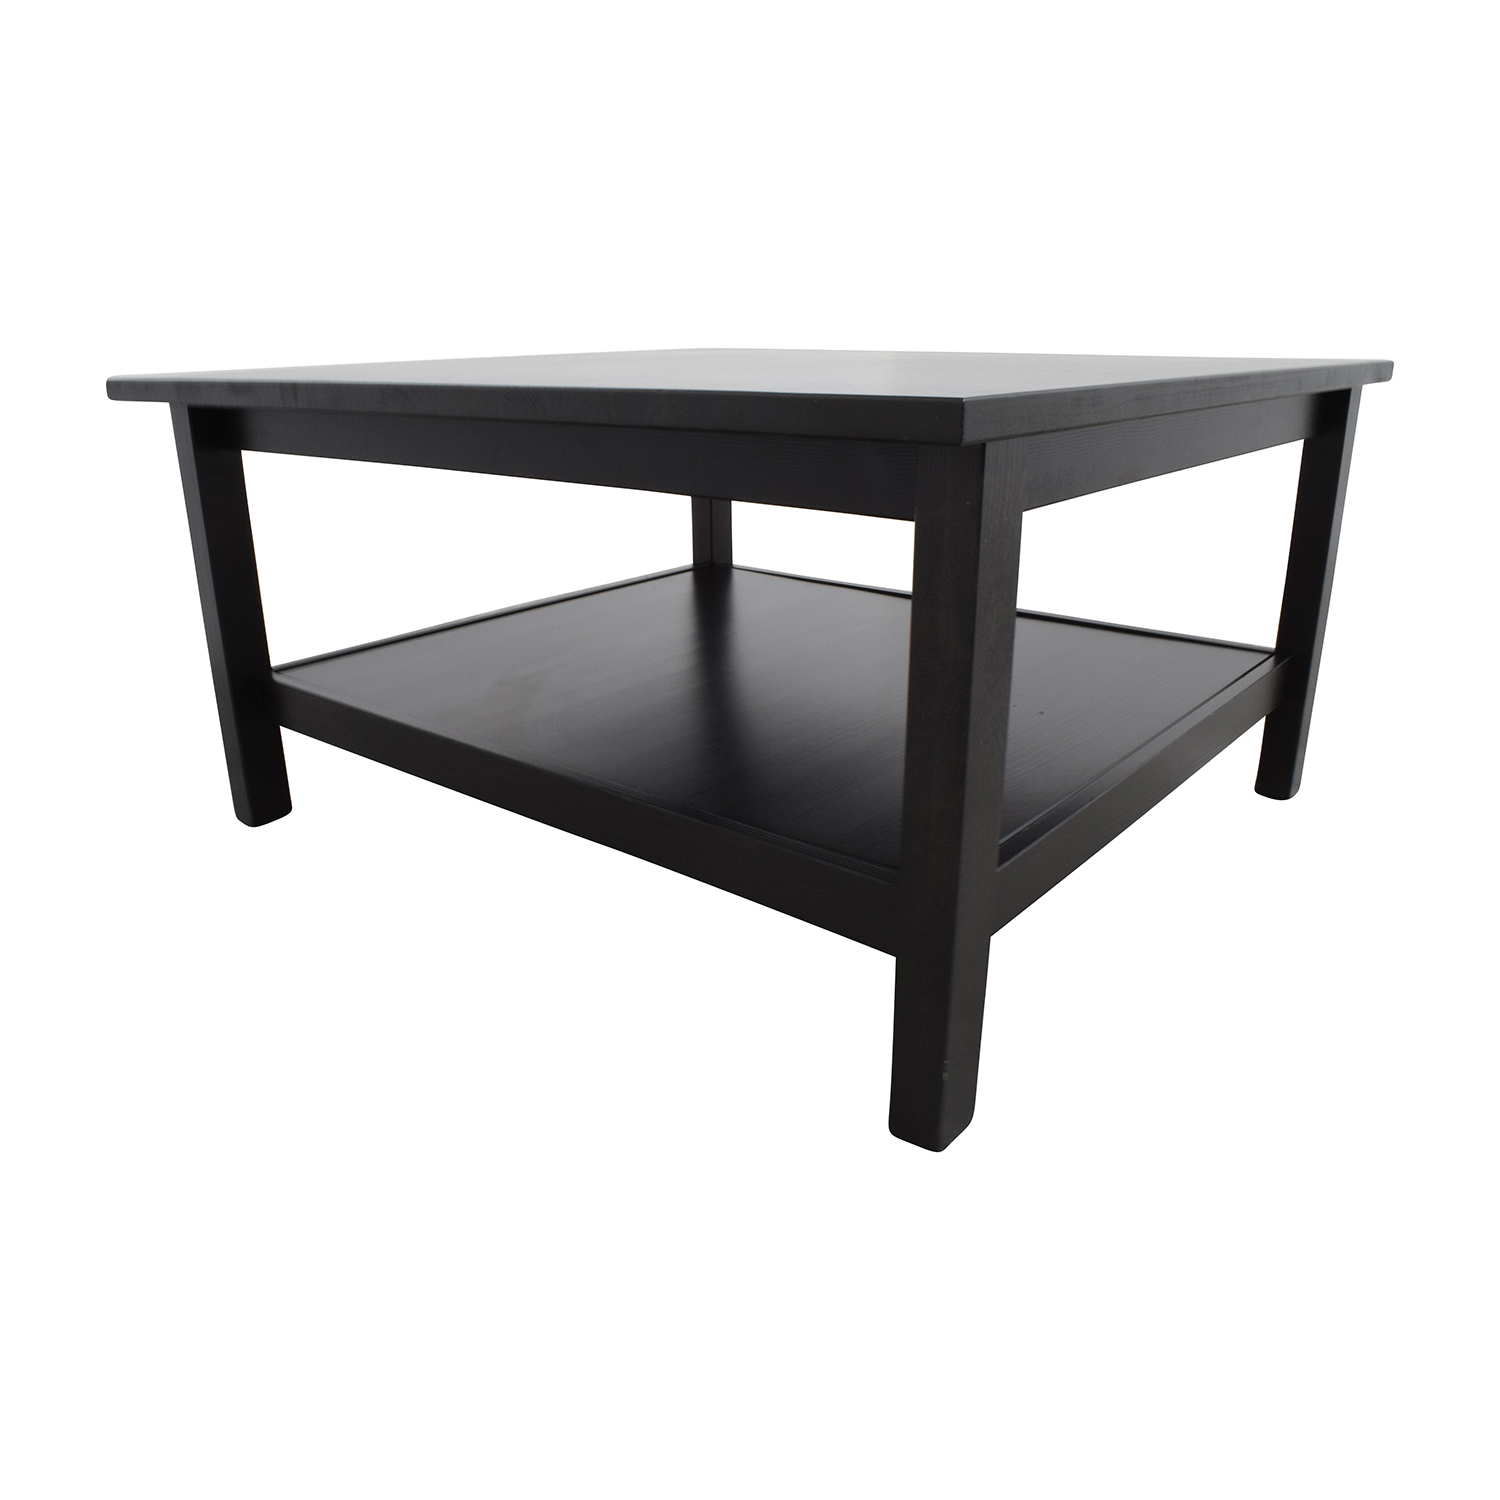 Couchtisch Quadratisch Ikea 66% Off - Ikea Ikea Brown Square Coffee Table / Tables